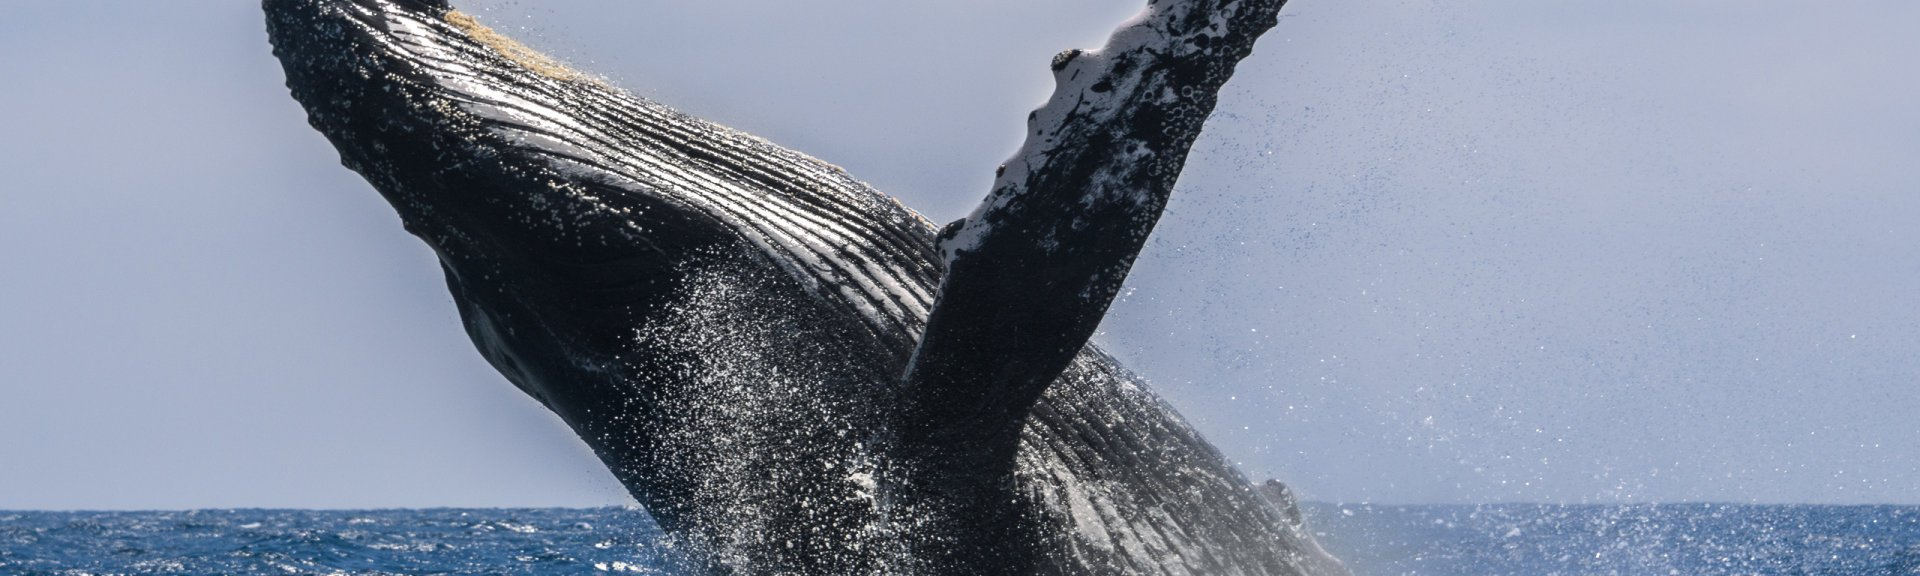 A breaching humpback whale. Image: Shutterstock.